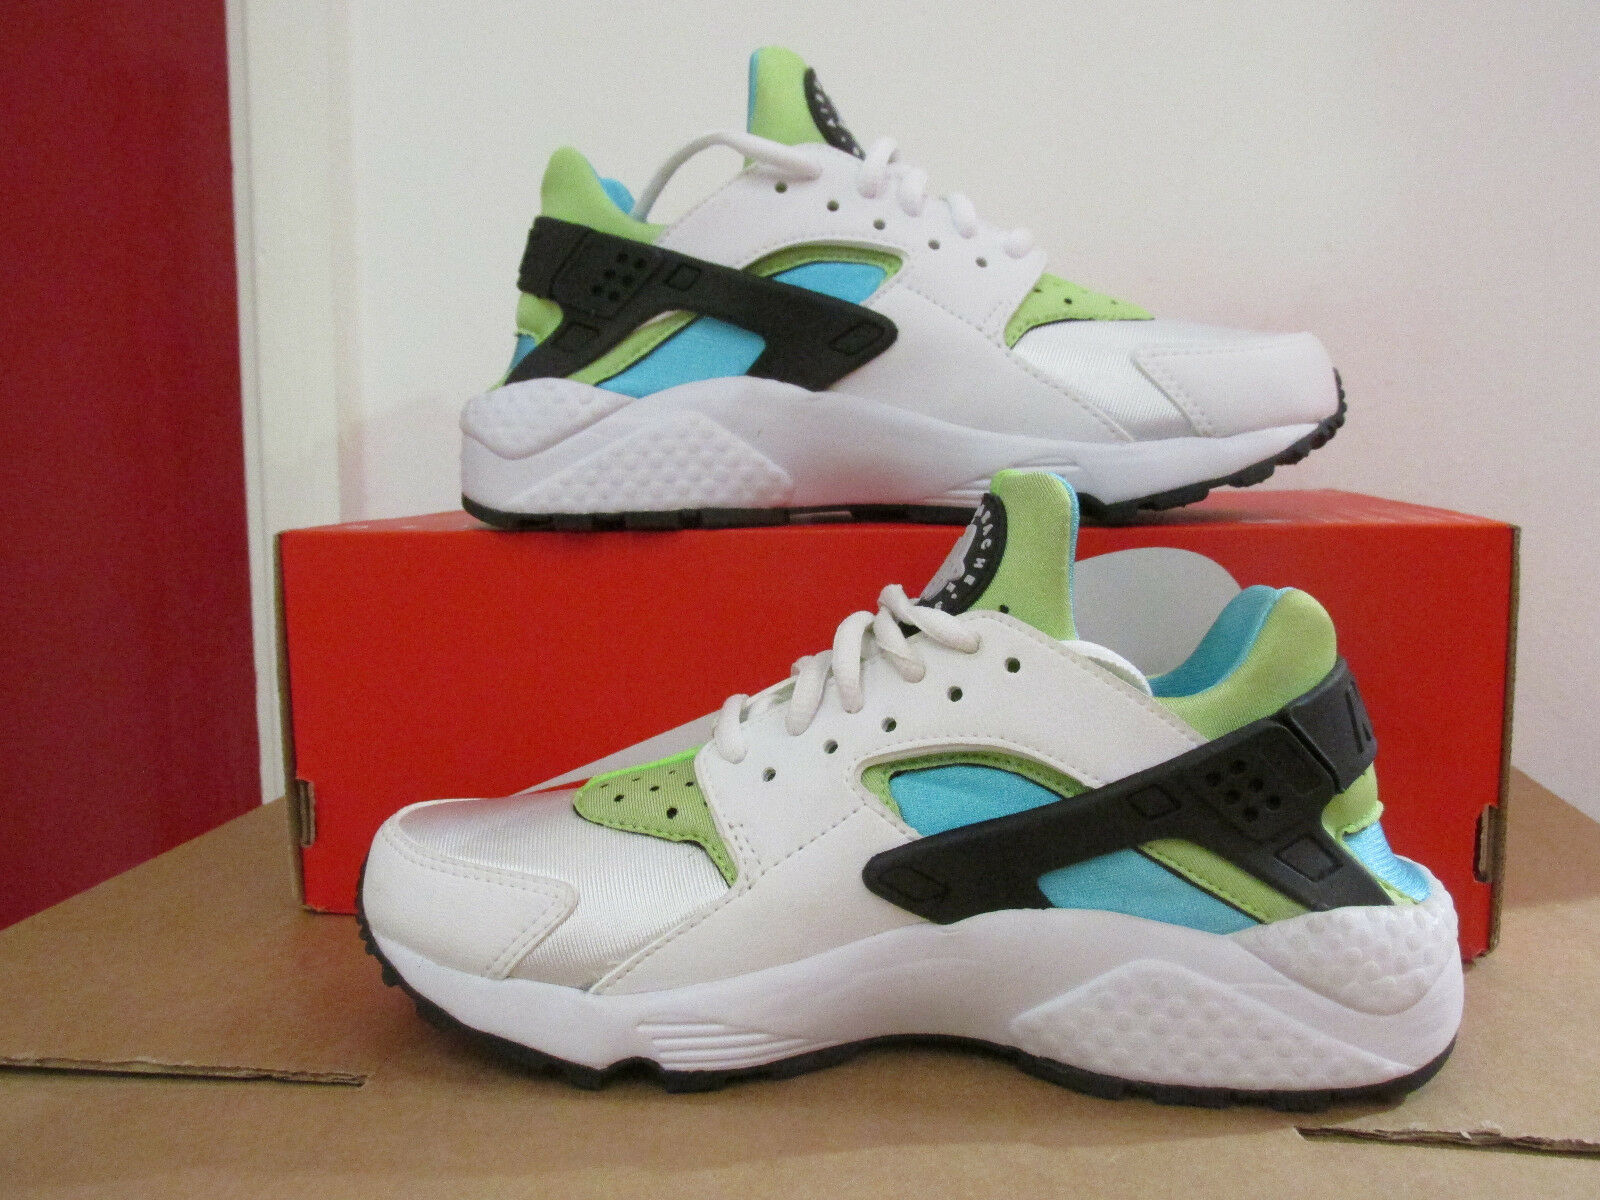 nike womens air huarache run running trainers 634835 100 sneakers CLEARANCE